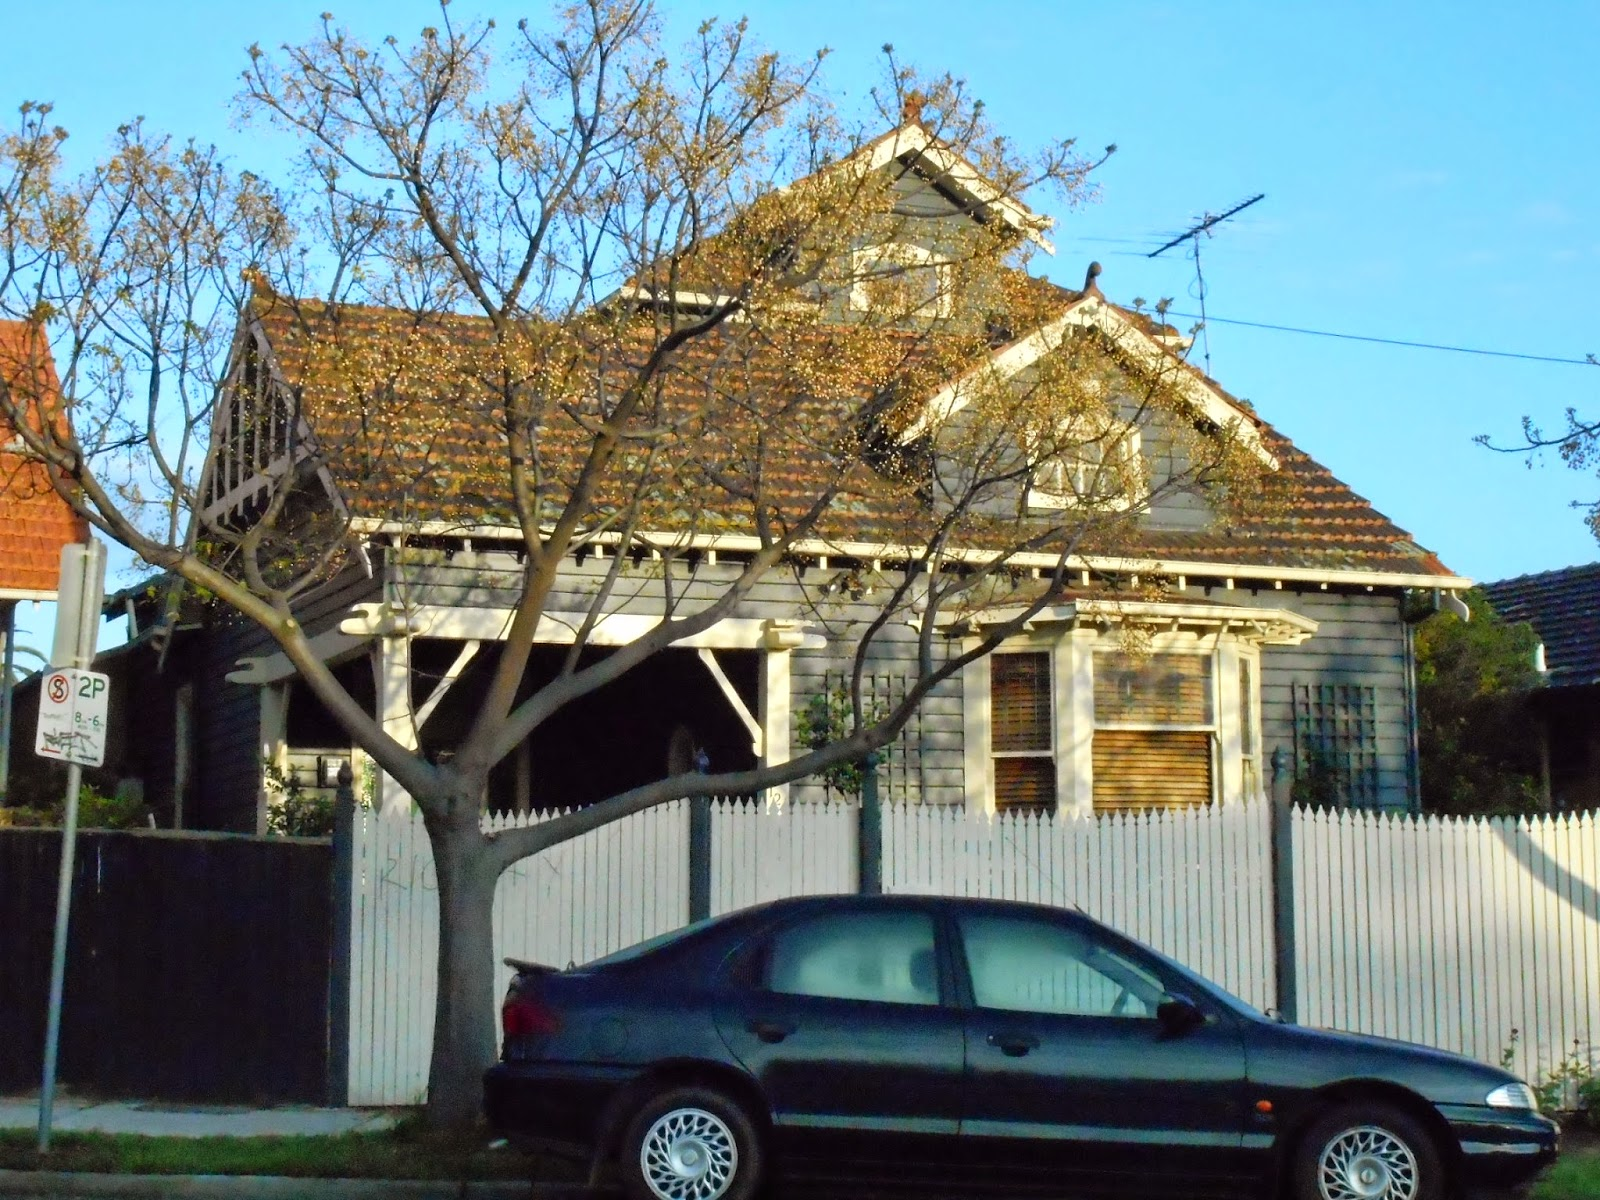 This Little Yellow House Houses in our neighbourhood 3 Featuring